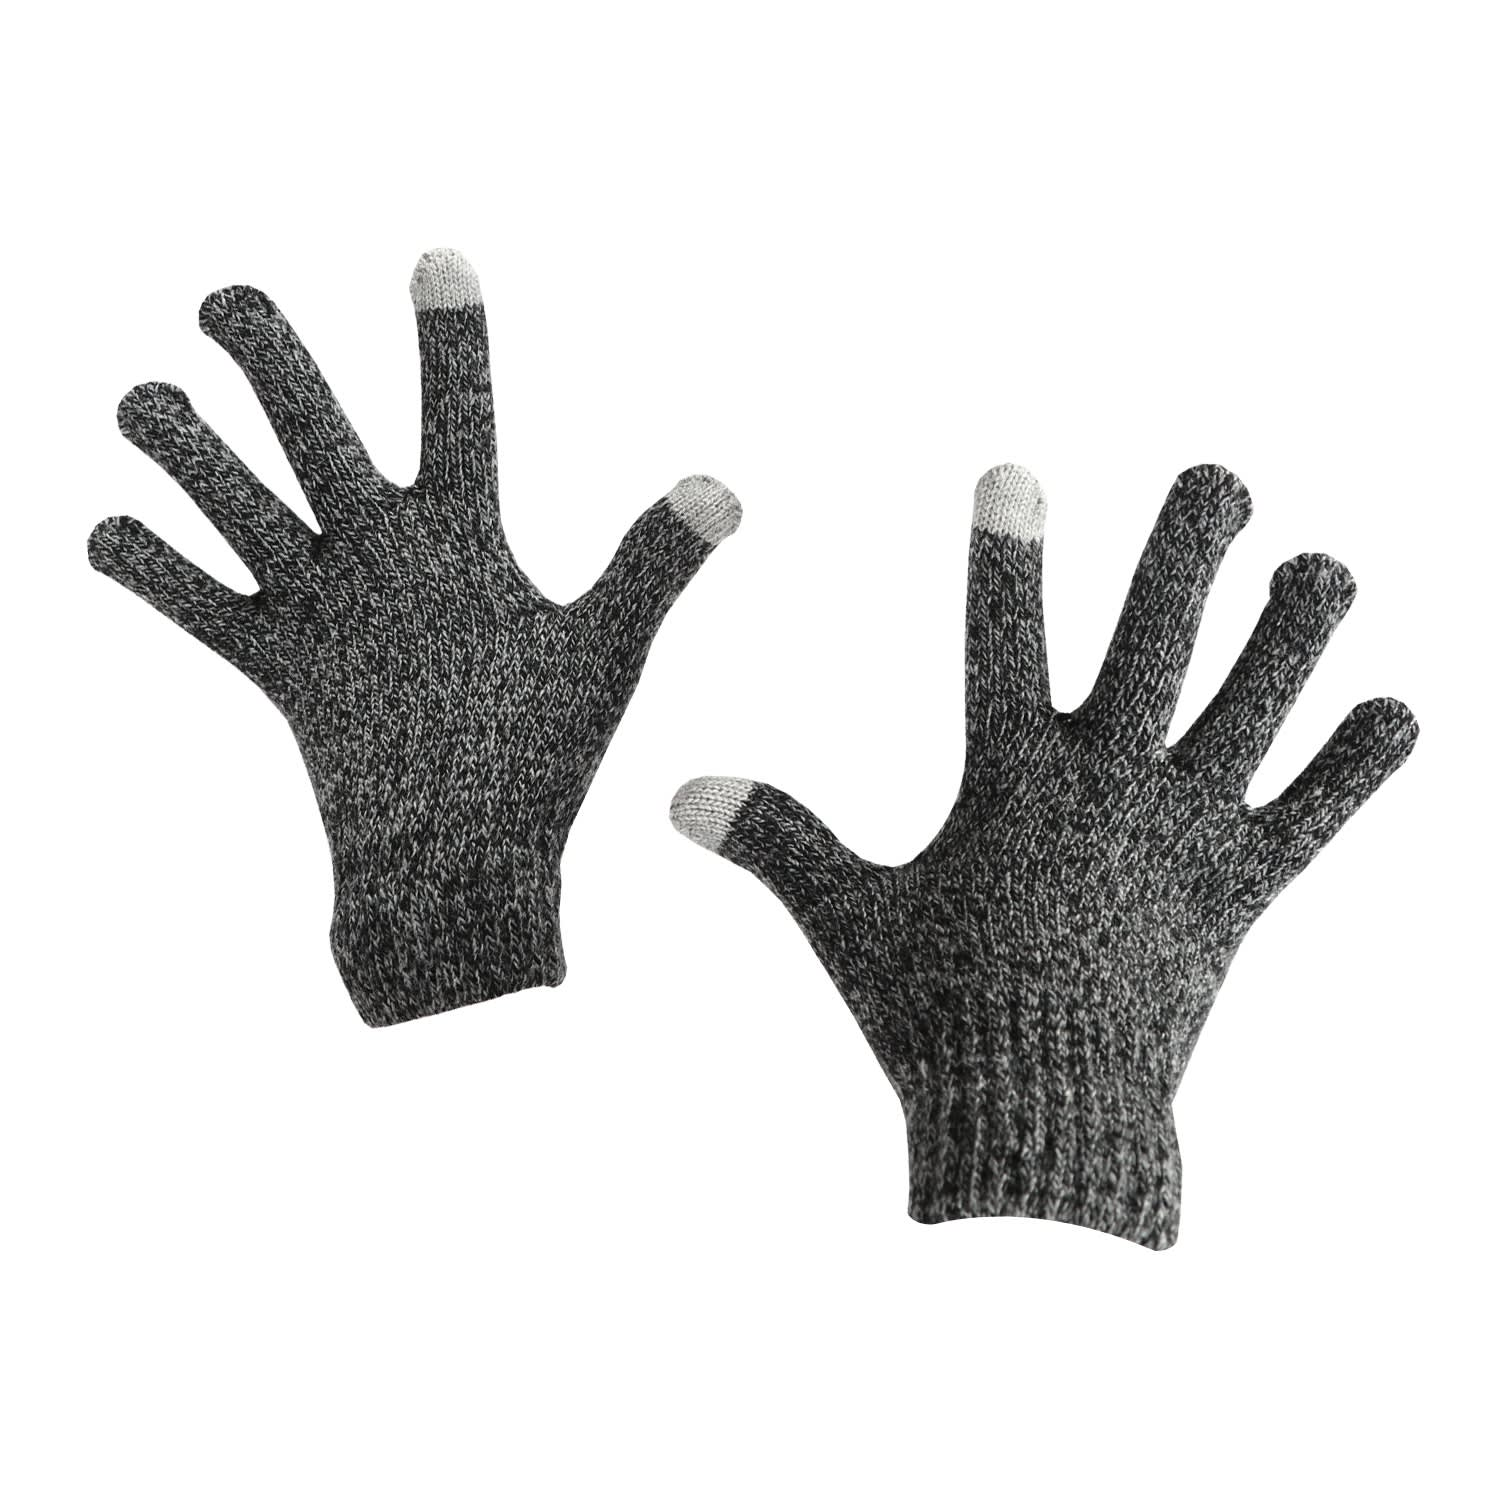 360 Degrees Women's Knitted Tech Glove